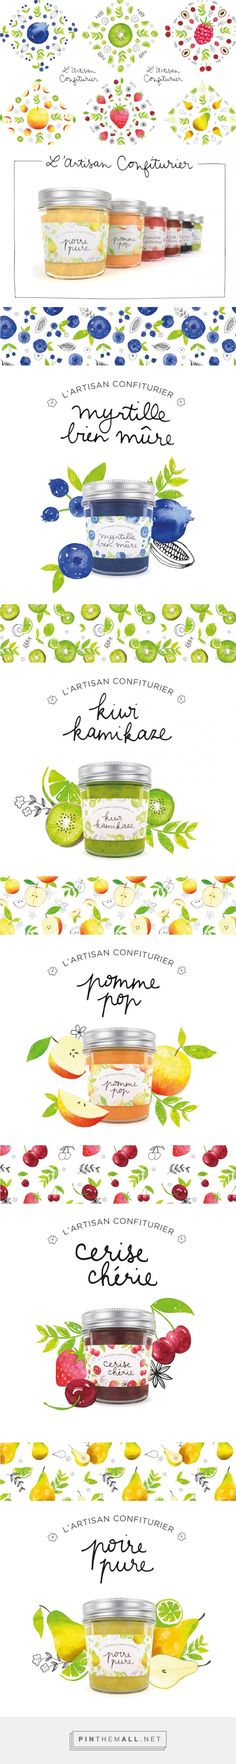 L'Artisan Confiturier (Concept) on Packaging of the World - Creative Package Design Gallery Más Fruit Packaging, Pretty Packaging, Brand Packaging, Design Packaging, Coffee Packaging, Bottle Packaging, Product Packaging, Label Design, Branding Design